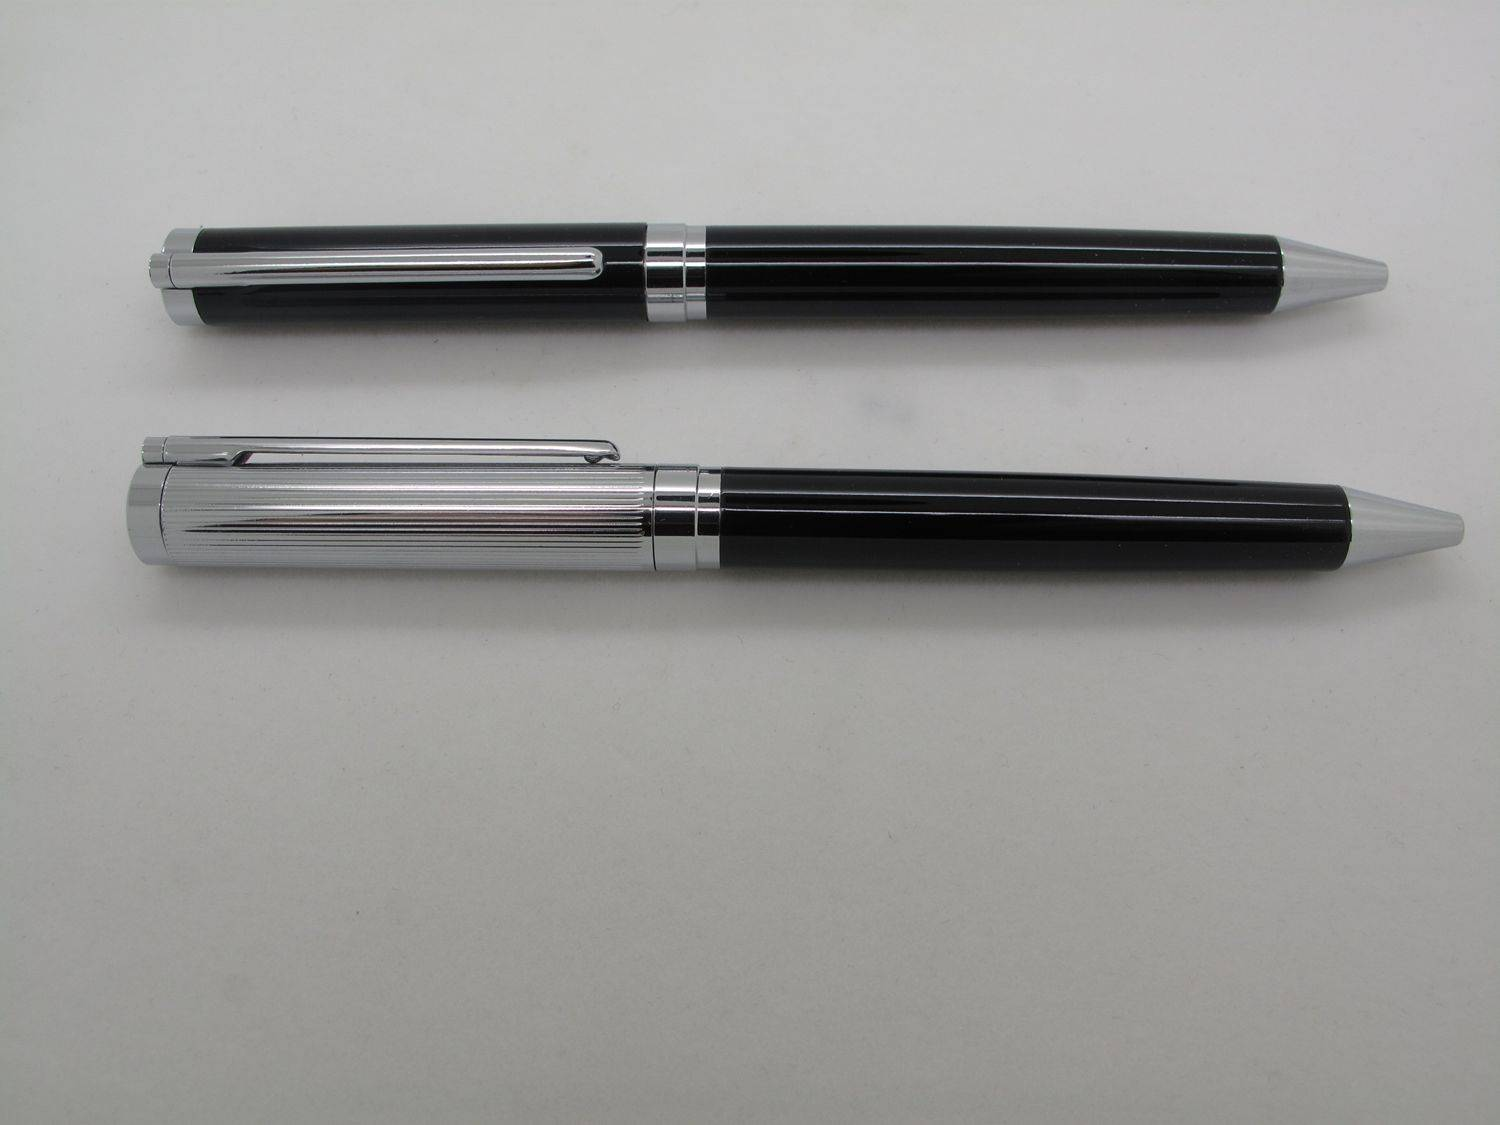 2016 Hot new products promotional ball pen